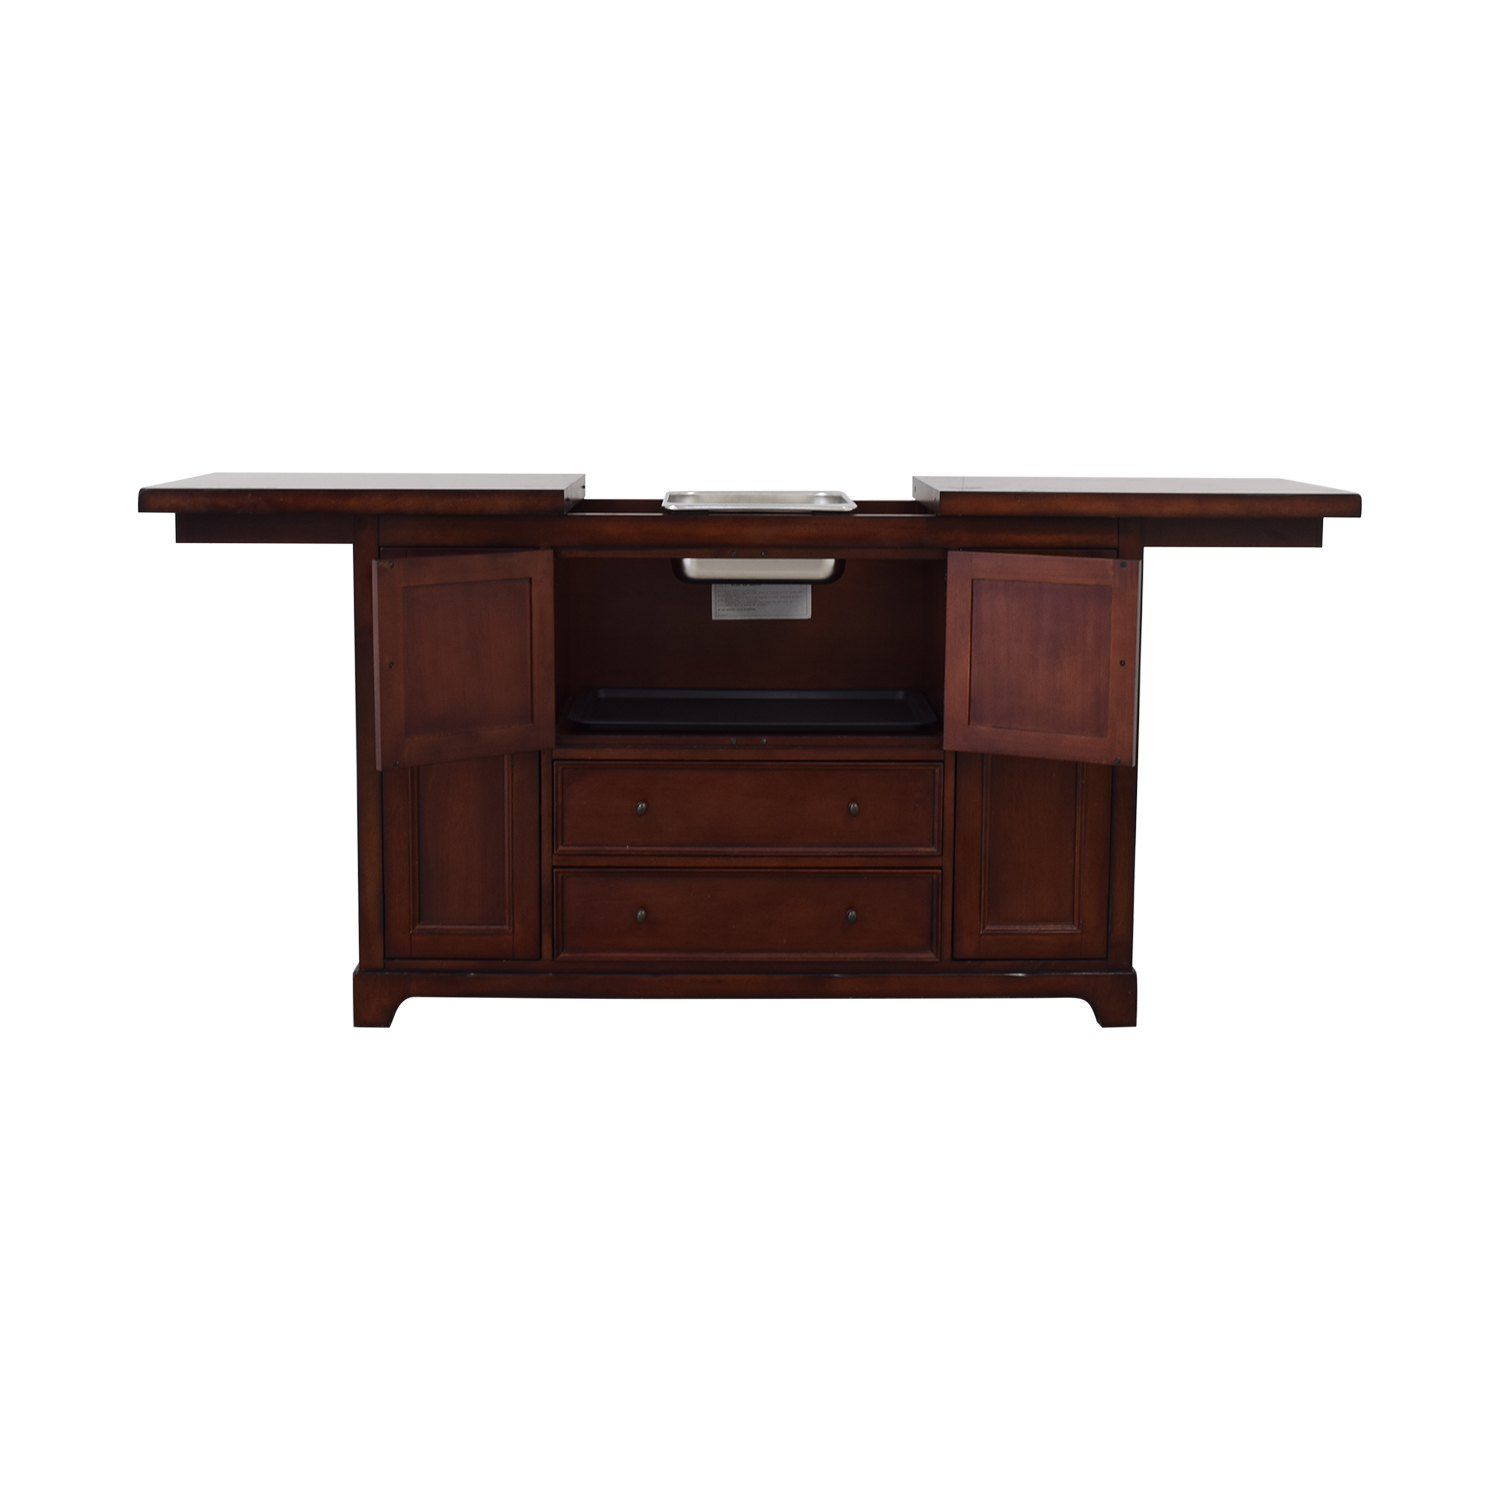 Pottery Barn Torrens Bar Cabinet / Cabinets & Sideboards